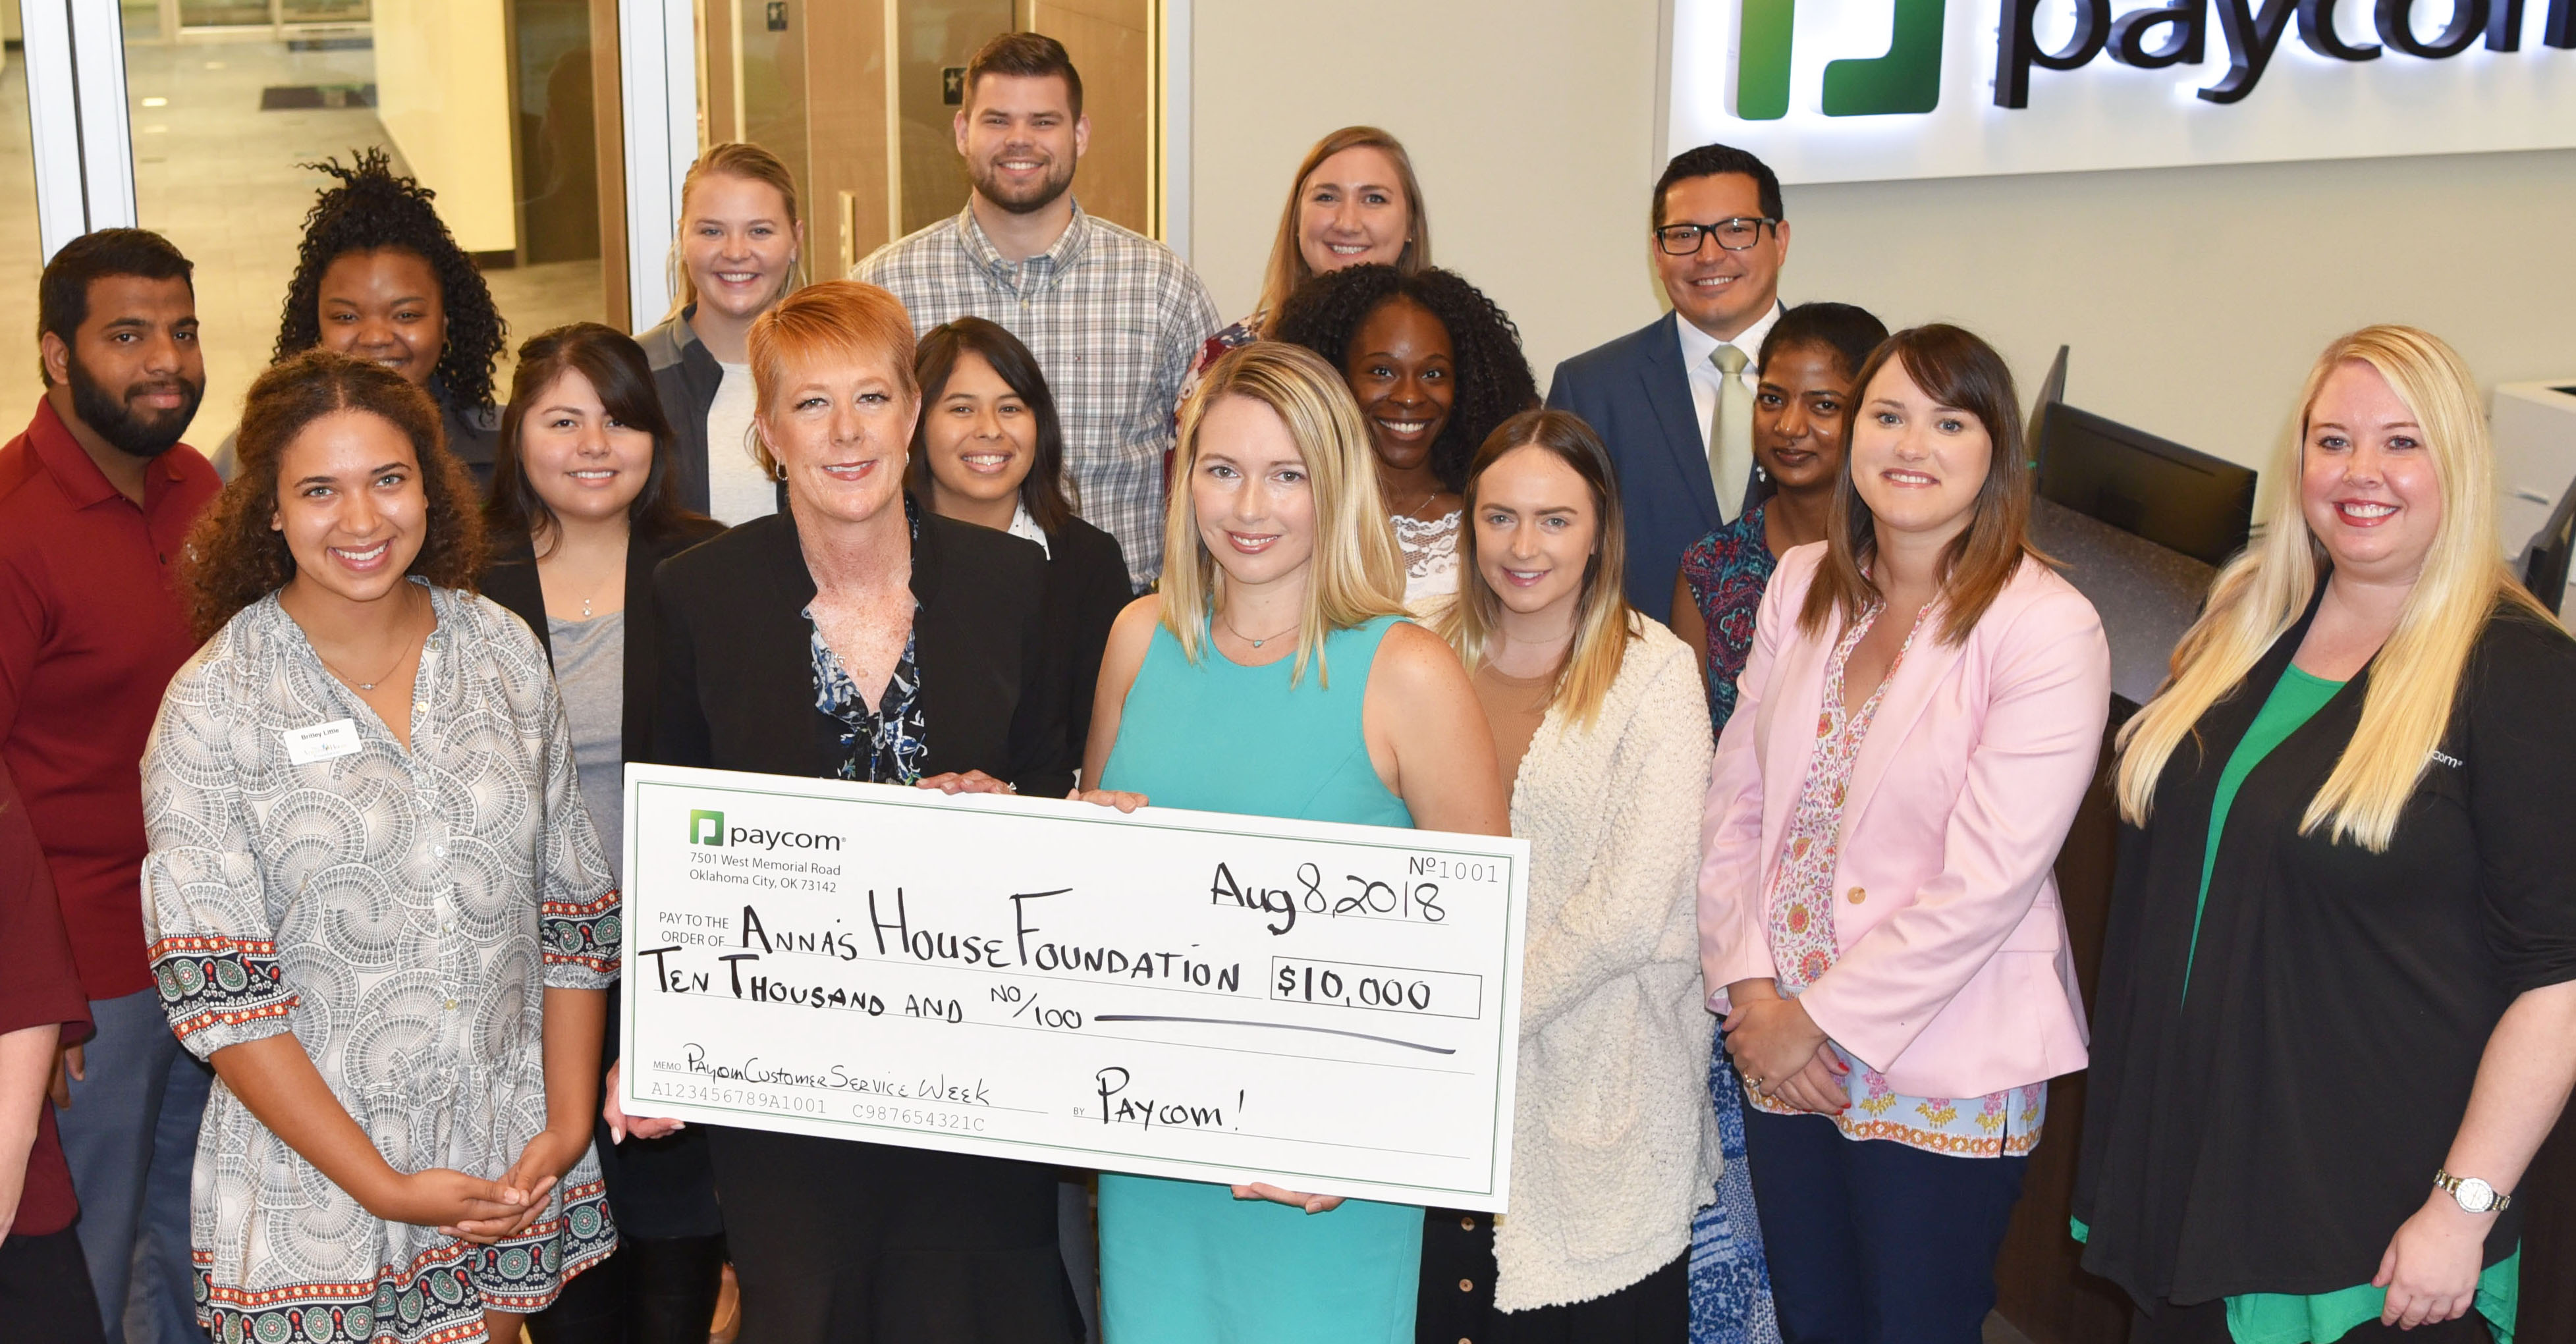 Paycom and Its Employees Donate $10,000 to Anna's House Foundation